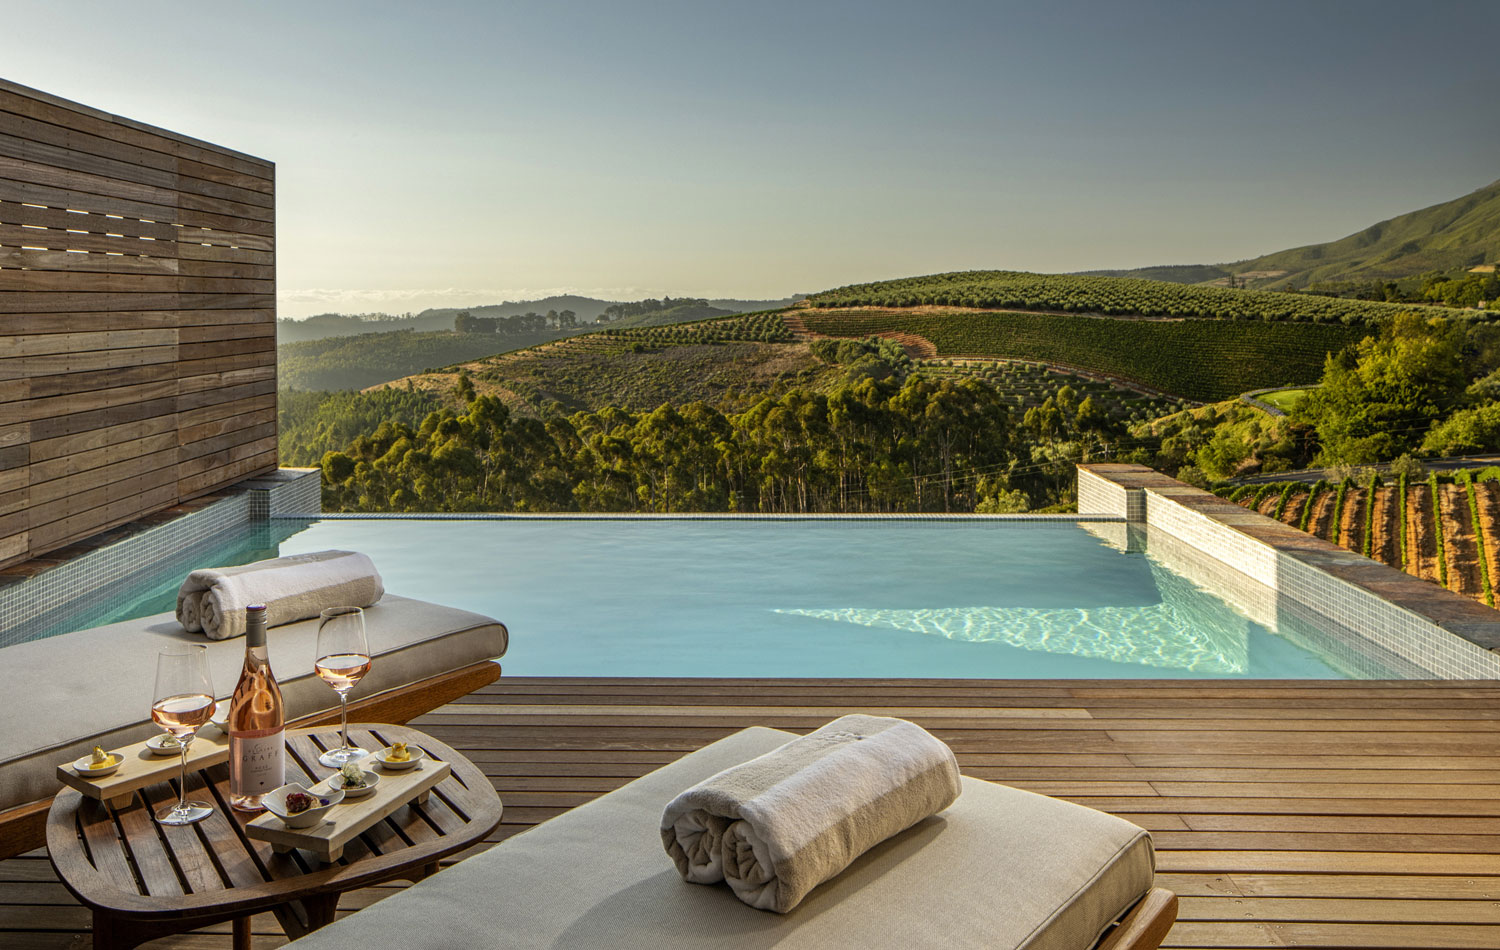 Superior Lodge terrace with plunge pool overlooking vineyards